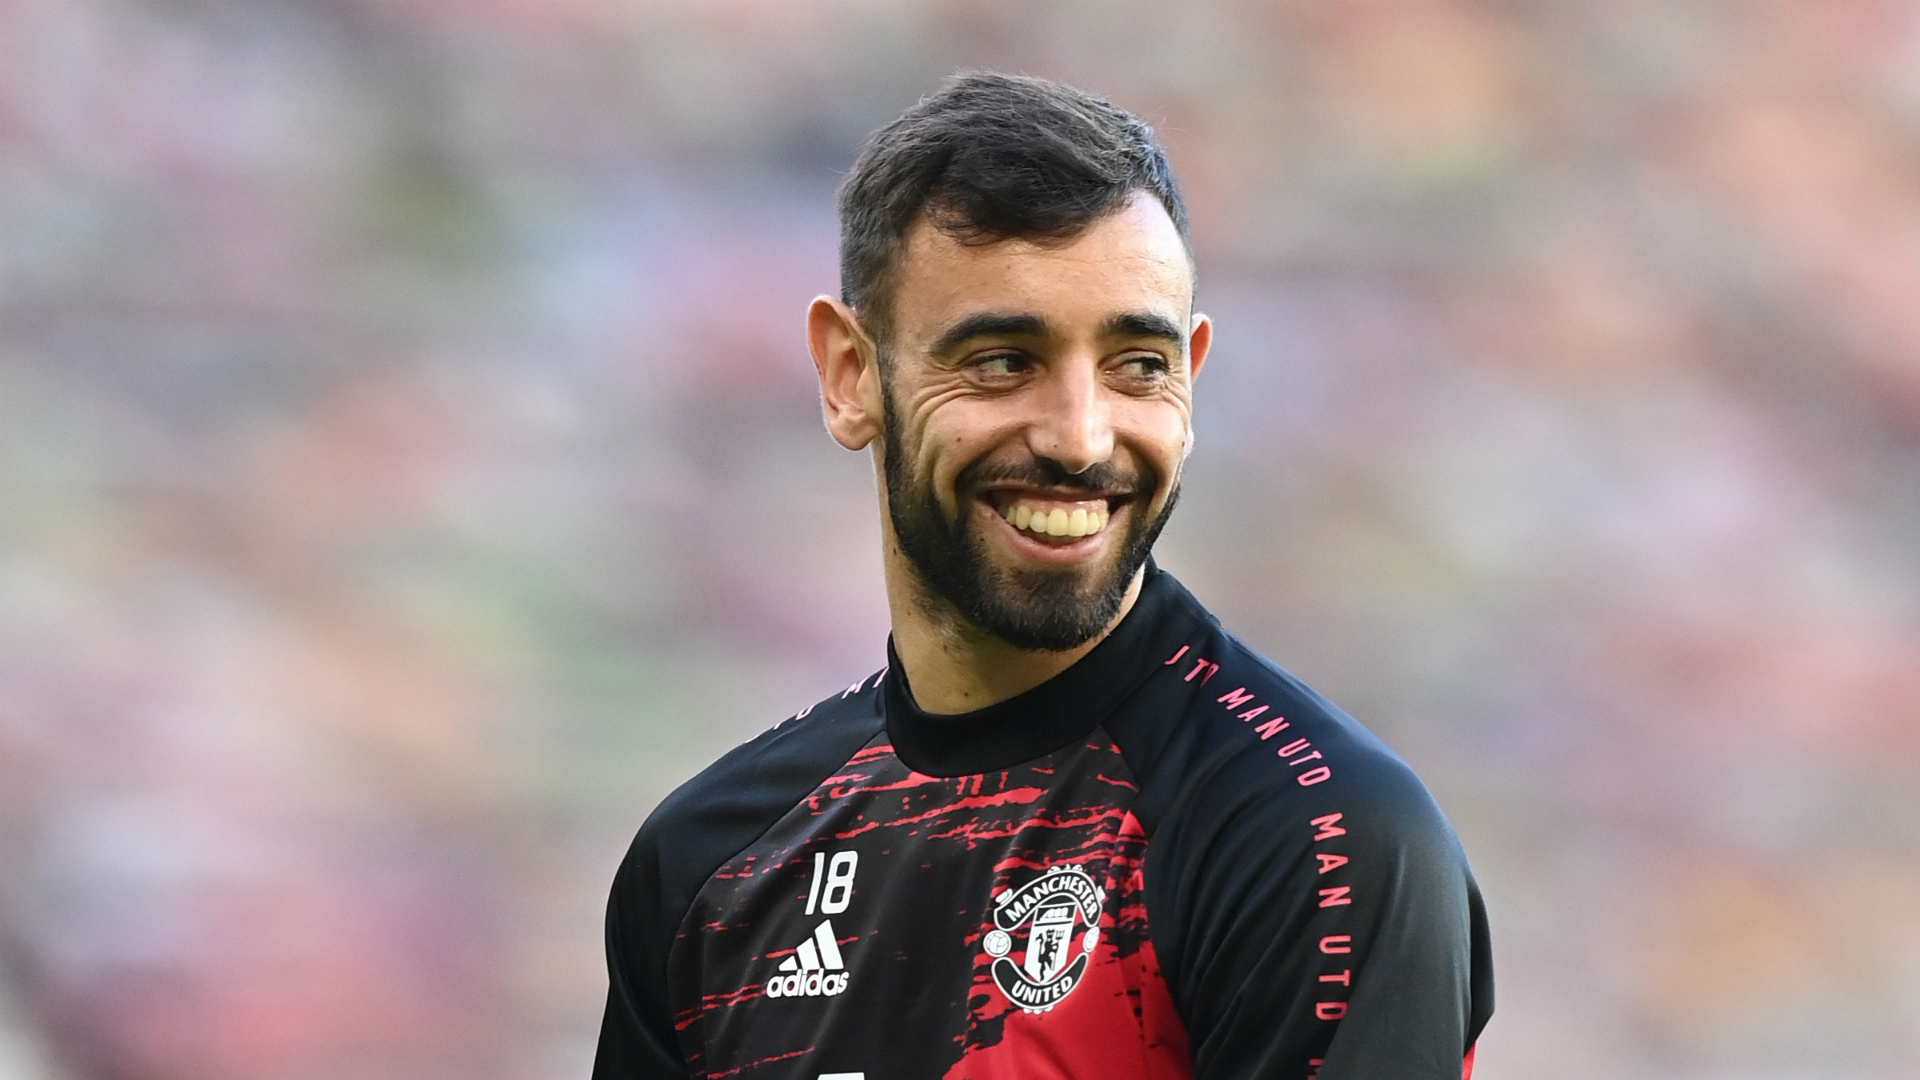 Bruno Fernandes: Europa League title can be start of something special for Man Utd